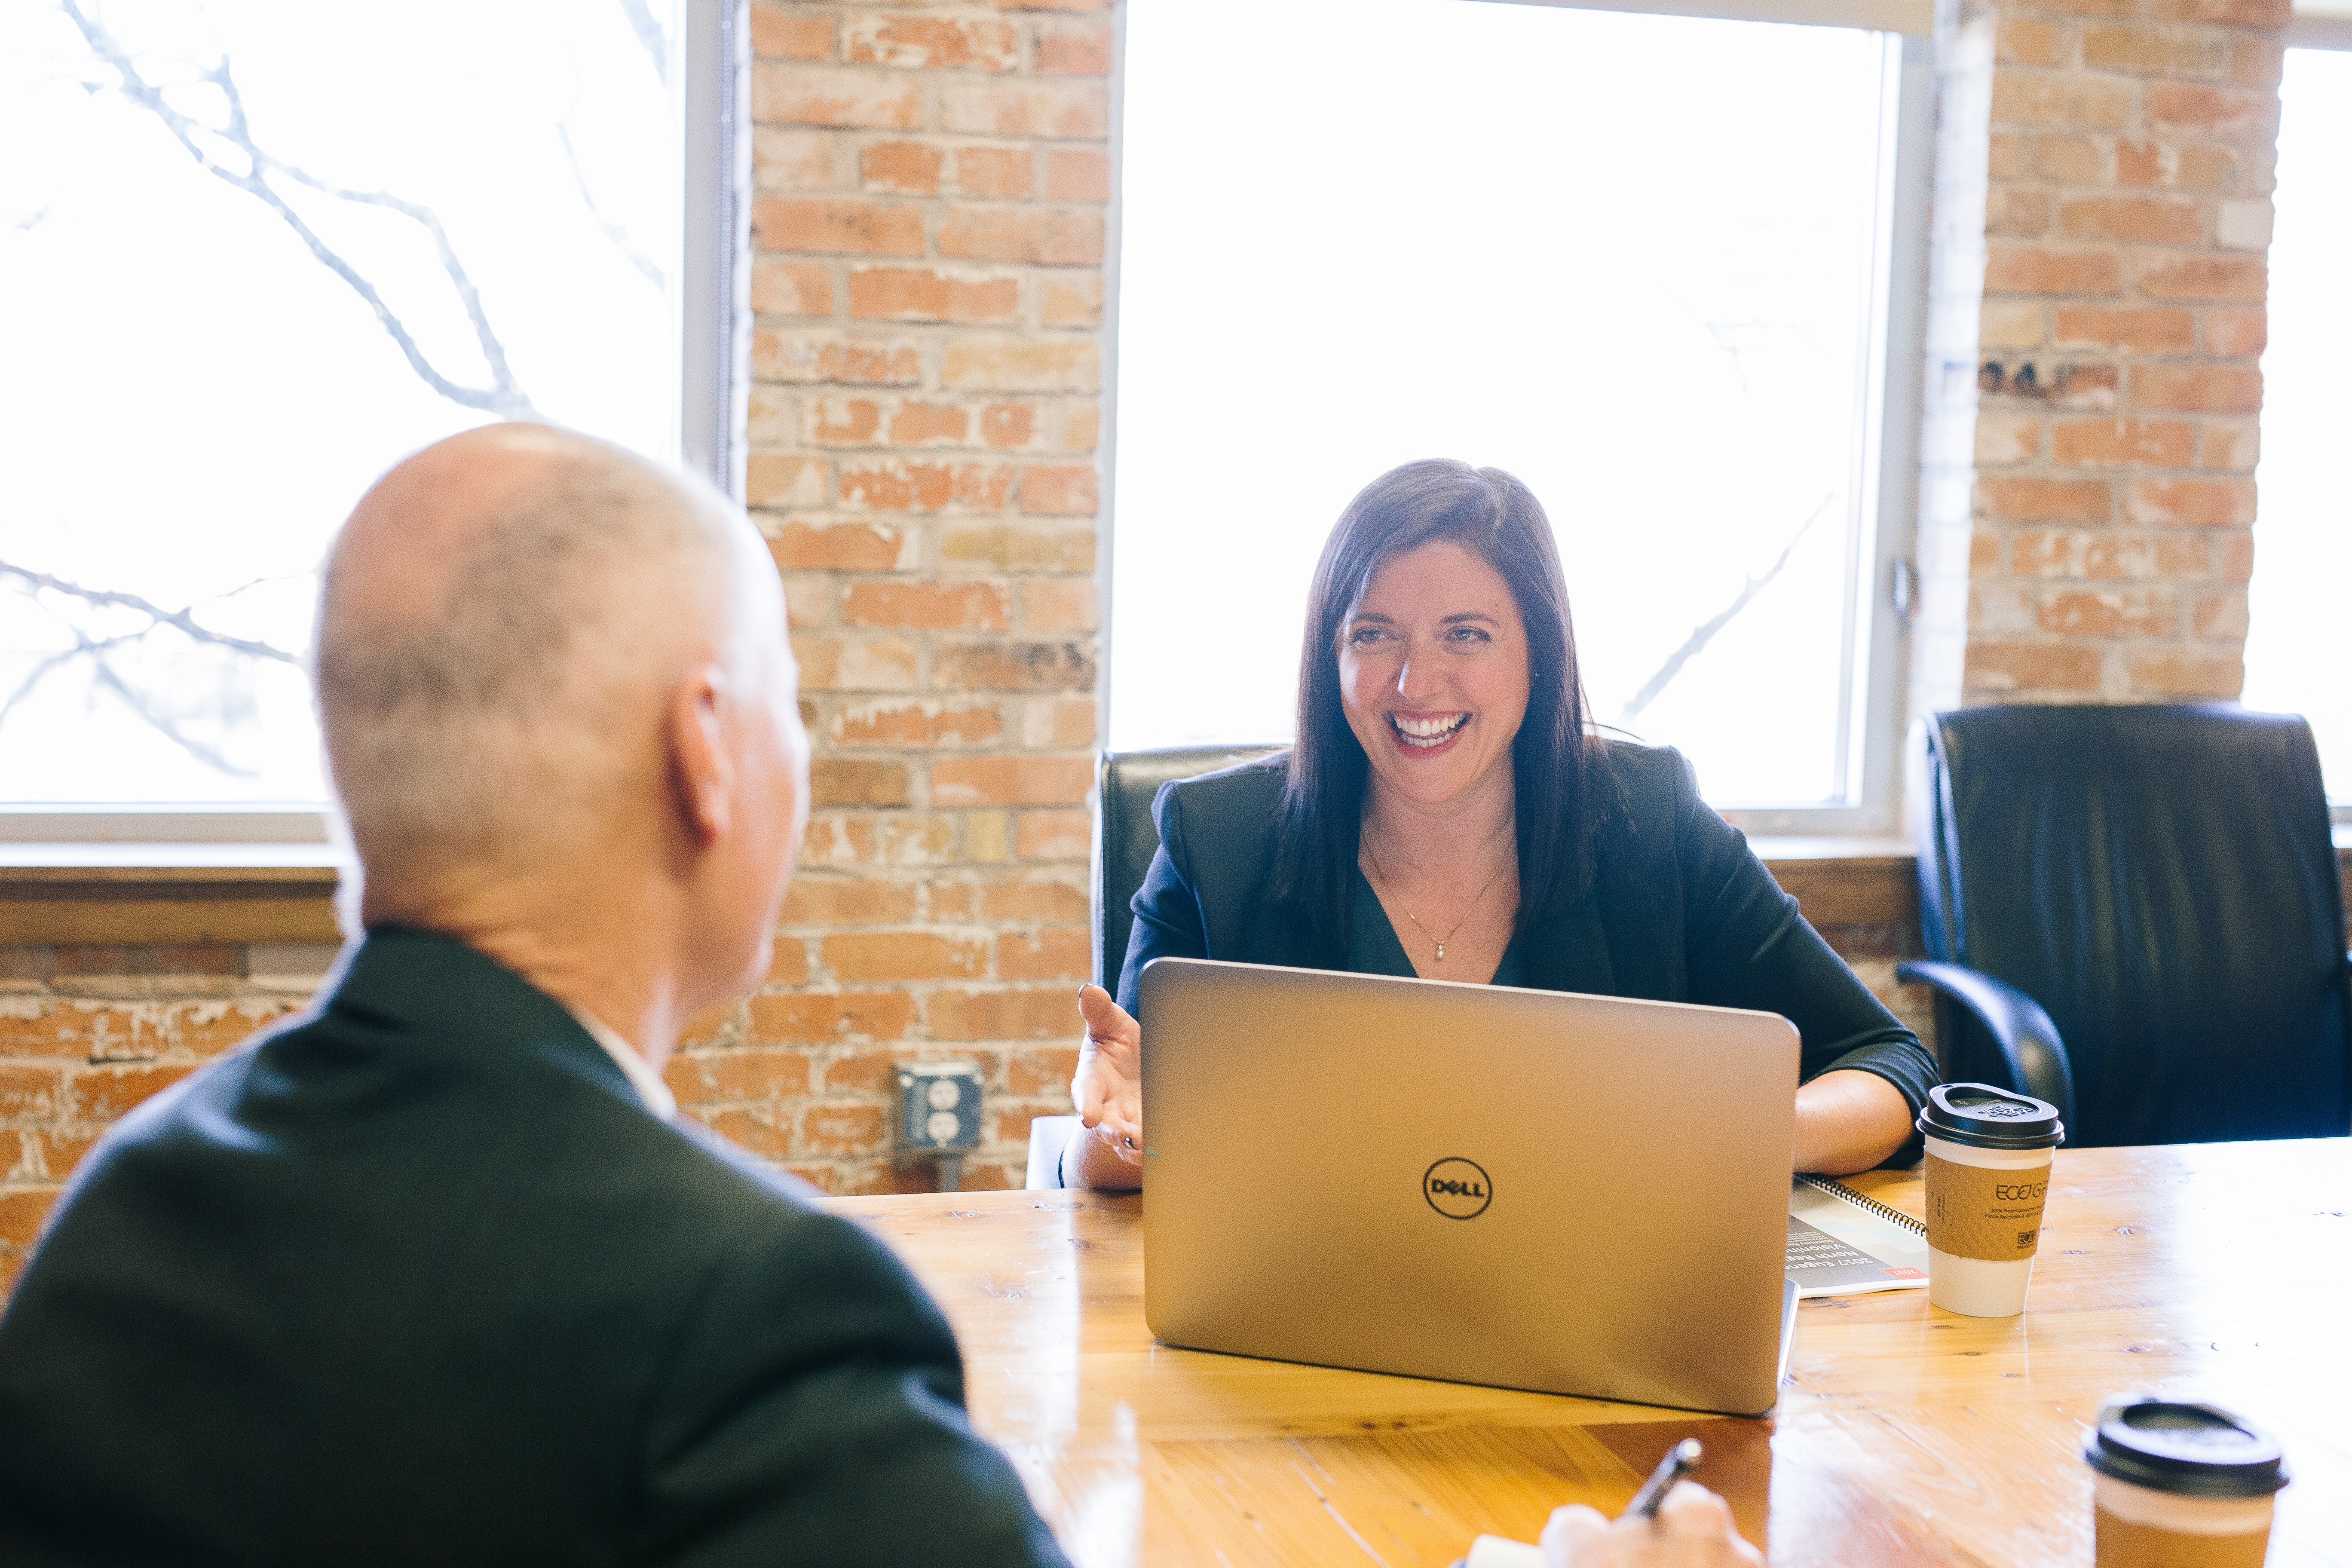 Business woman smiling at business man over board table